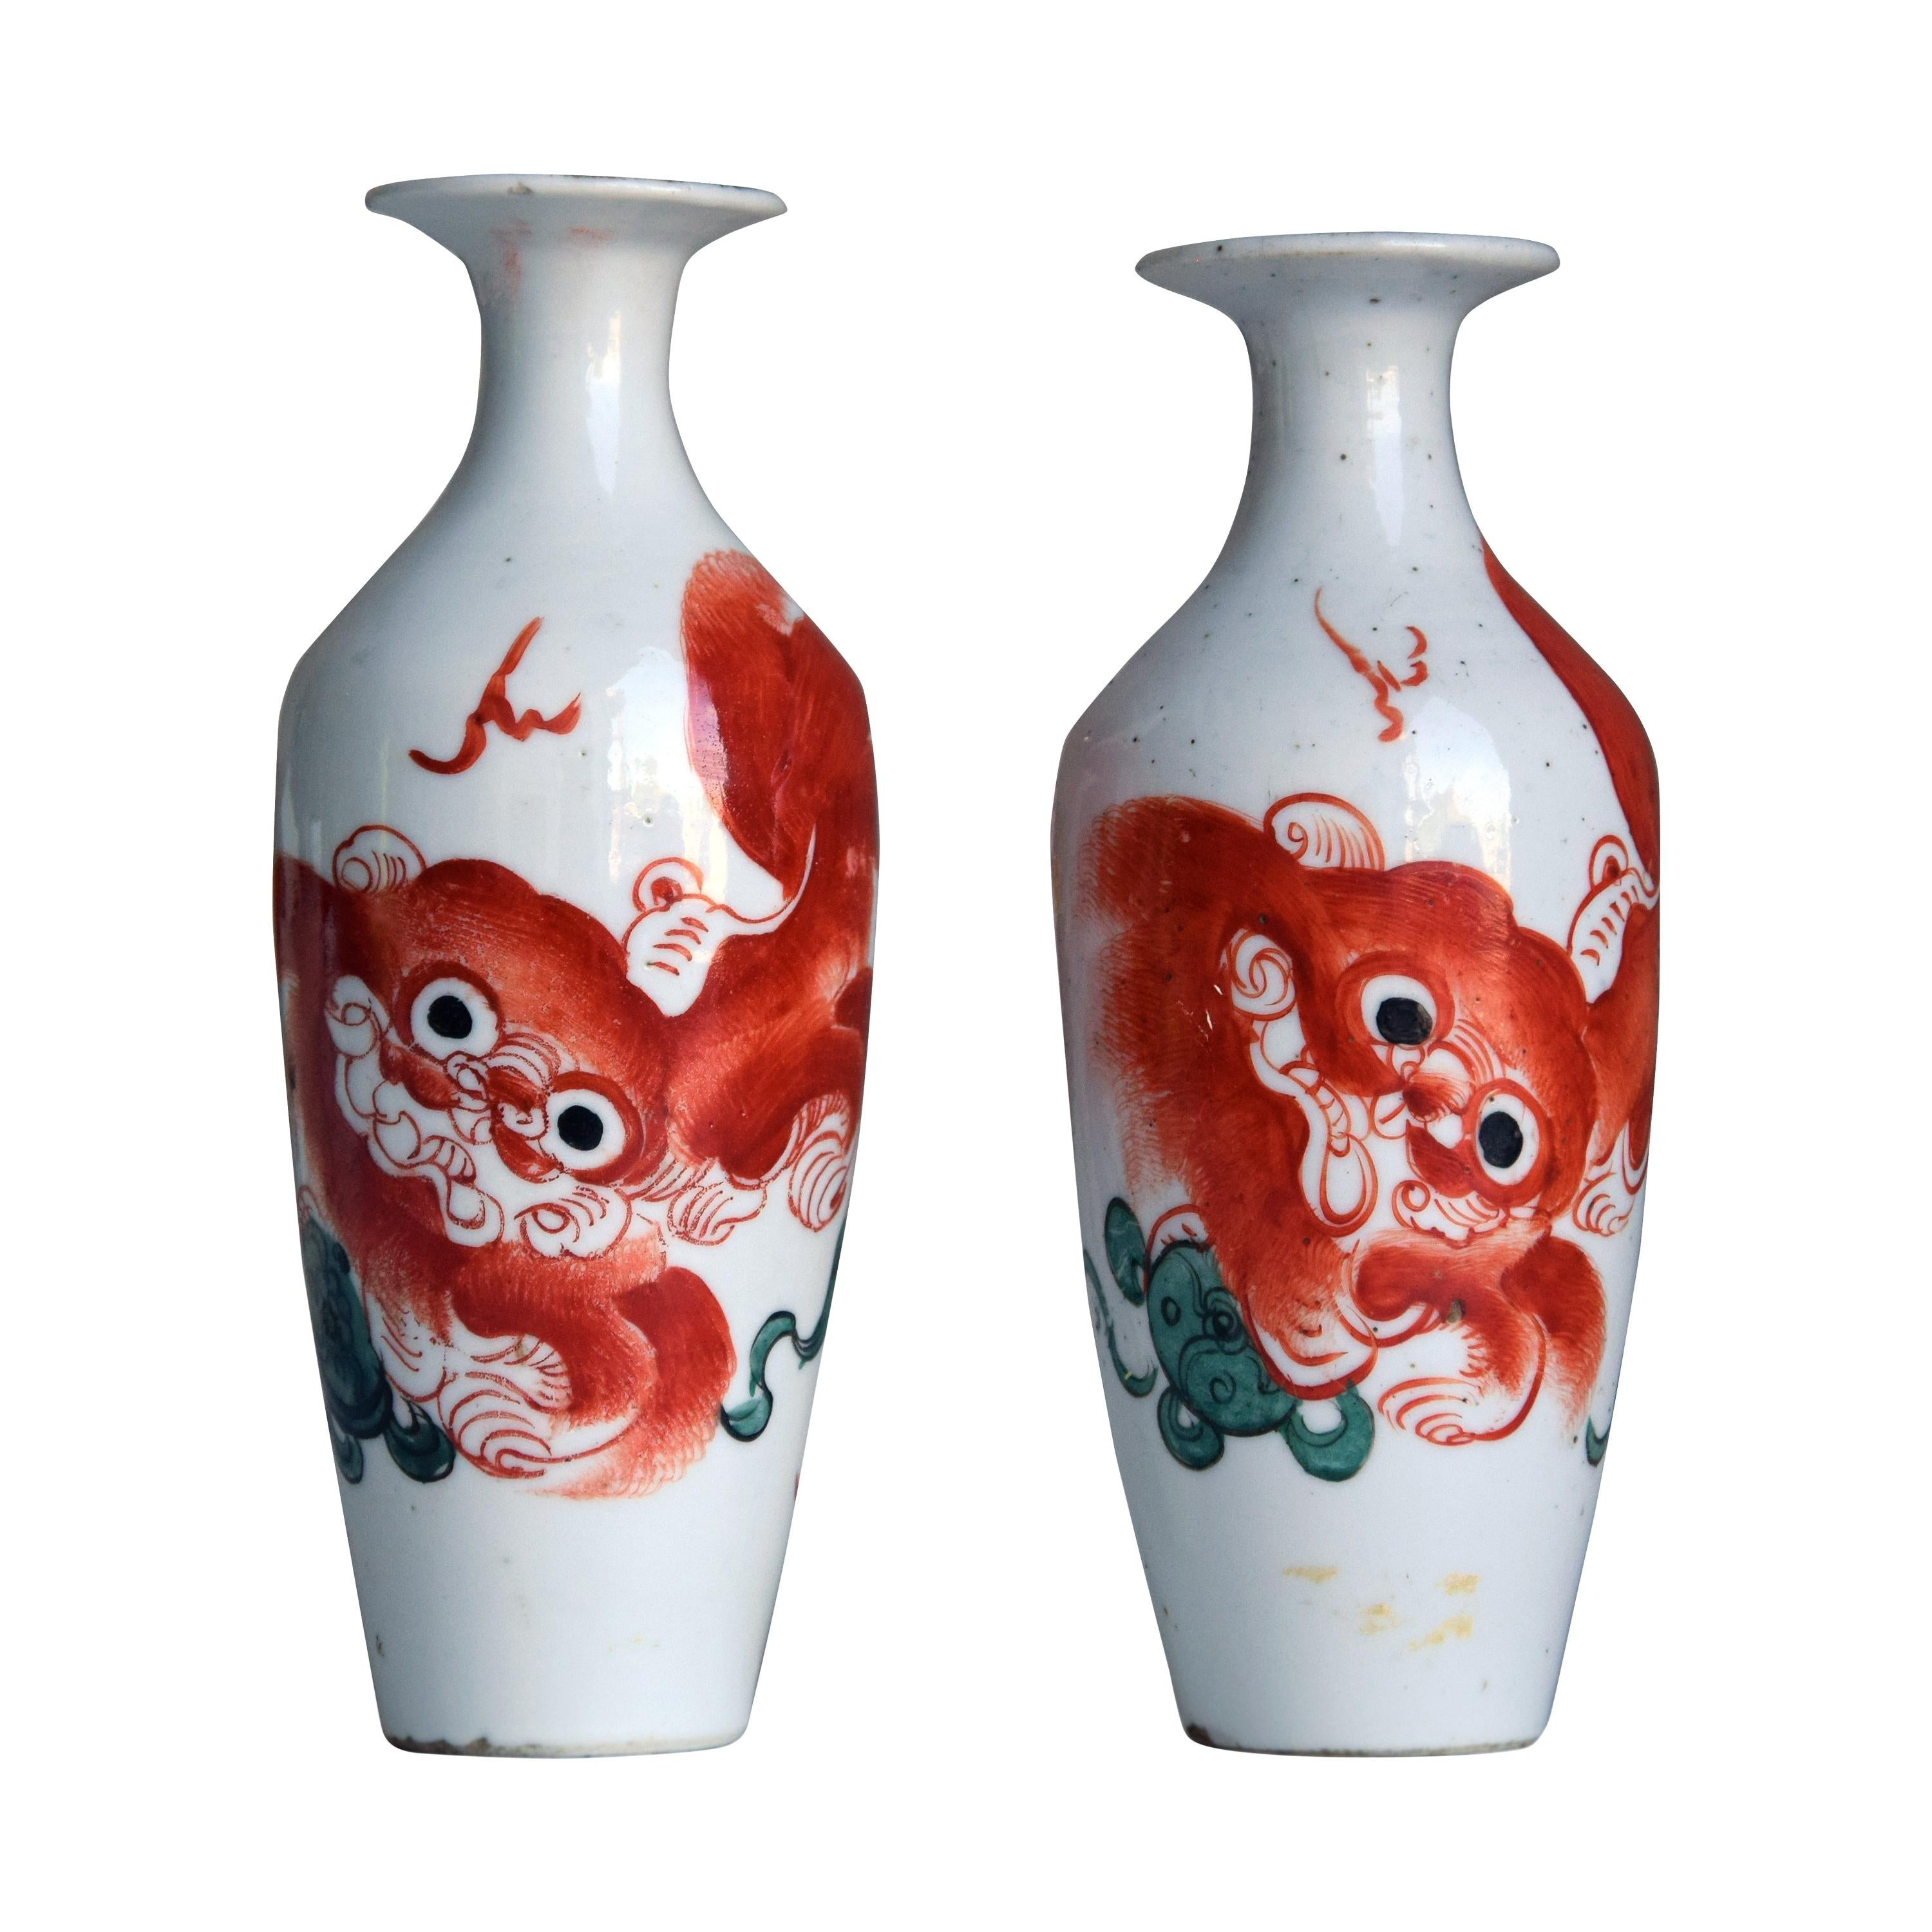 Two Vintage Chinese Porcelain Vases, Early 20th Century